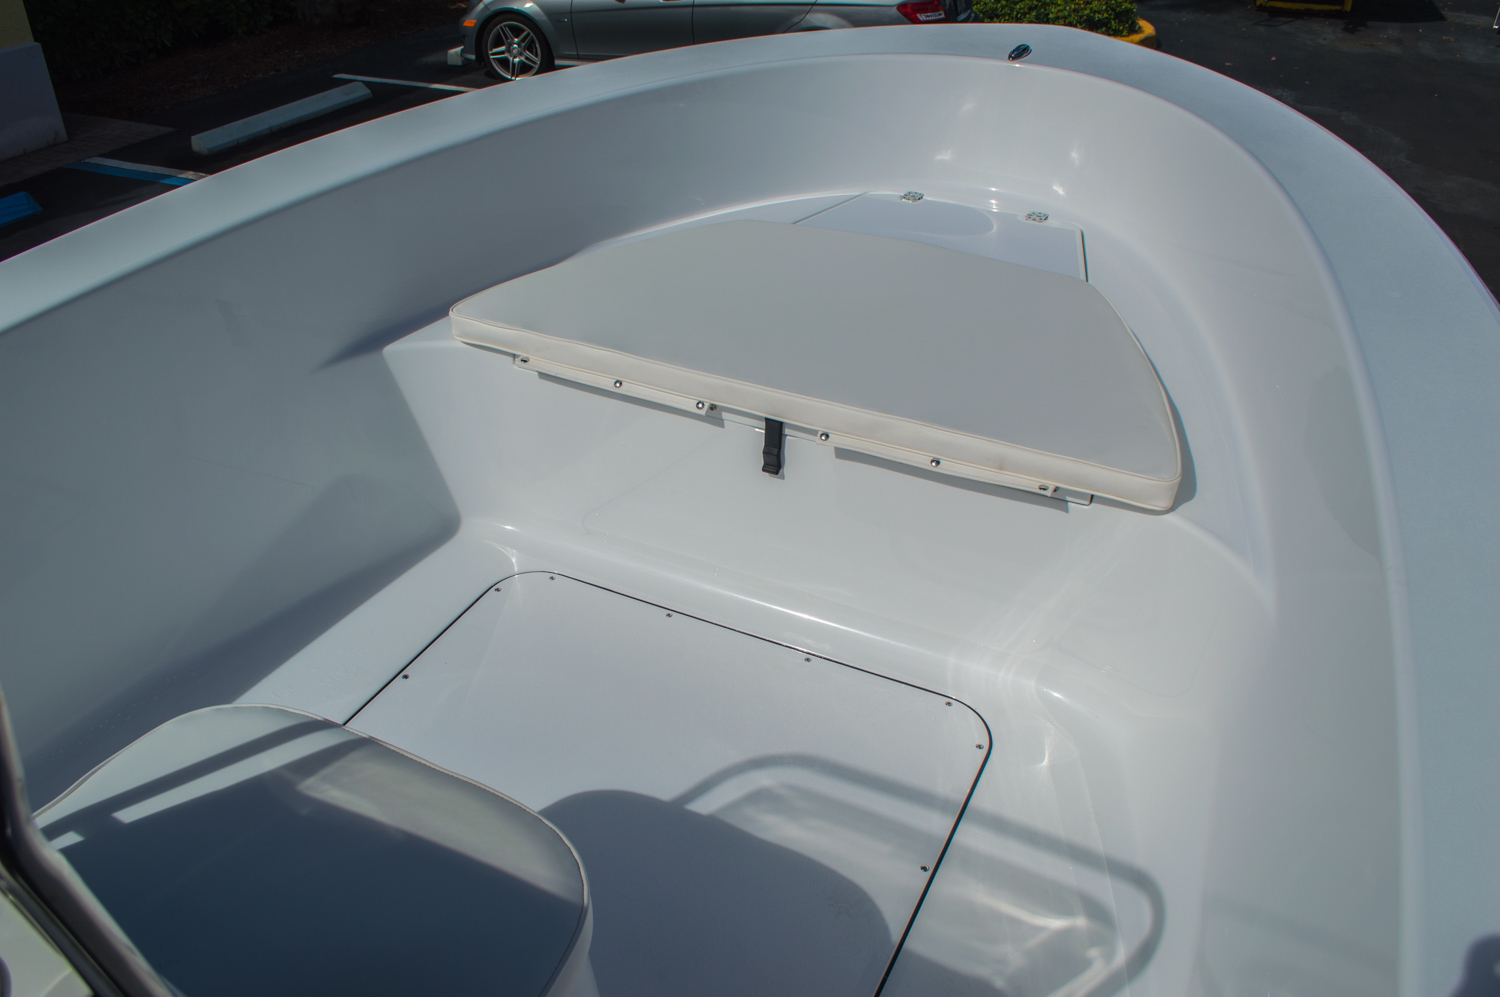 Thumbnail 44 for New 2016 Sportsman 19 Island Reef boat for sale in West Palm Beach, FL